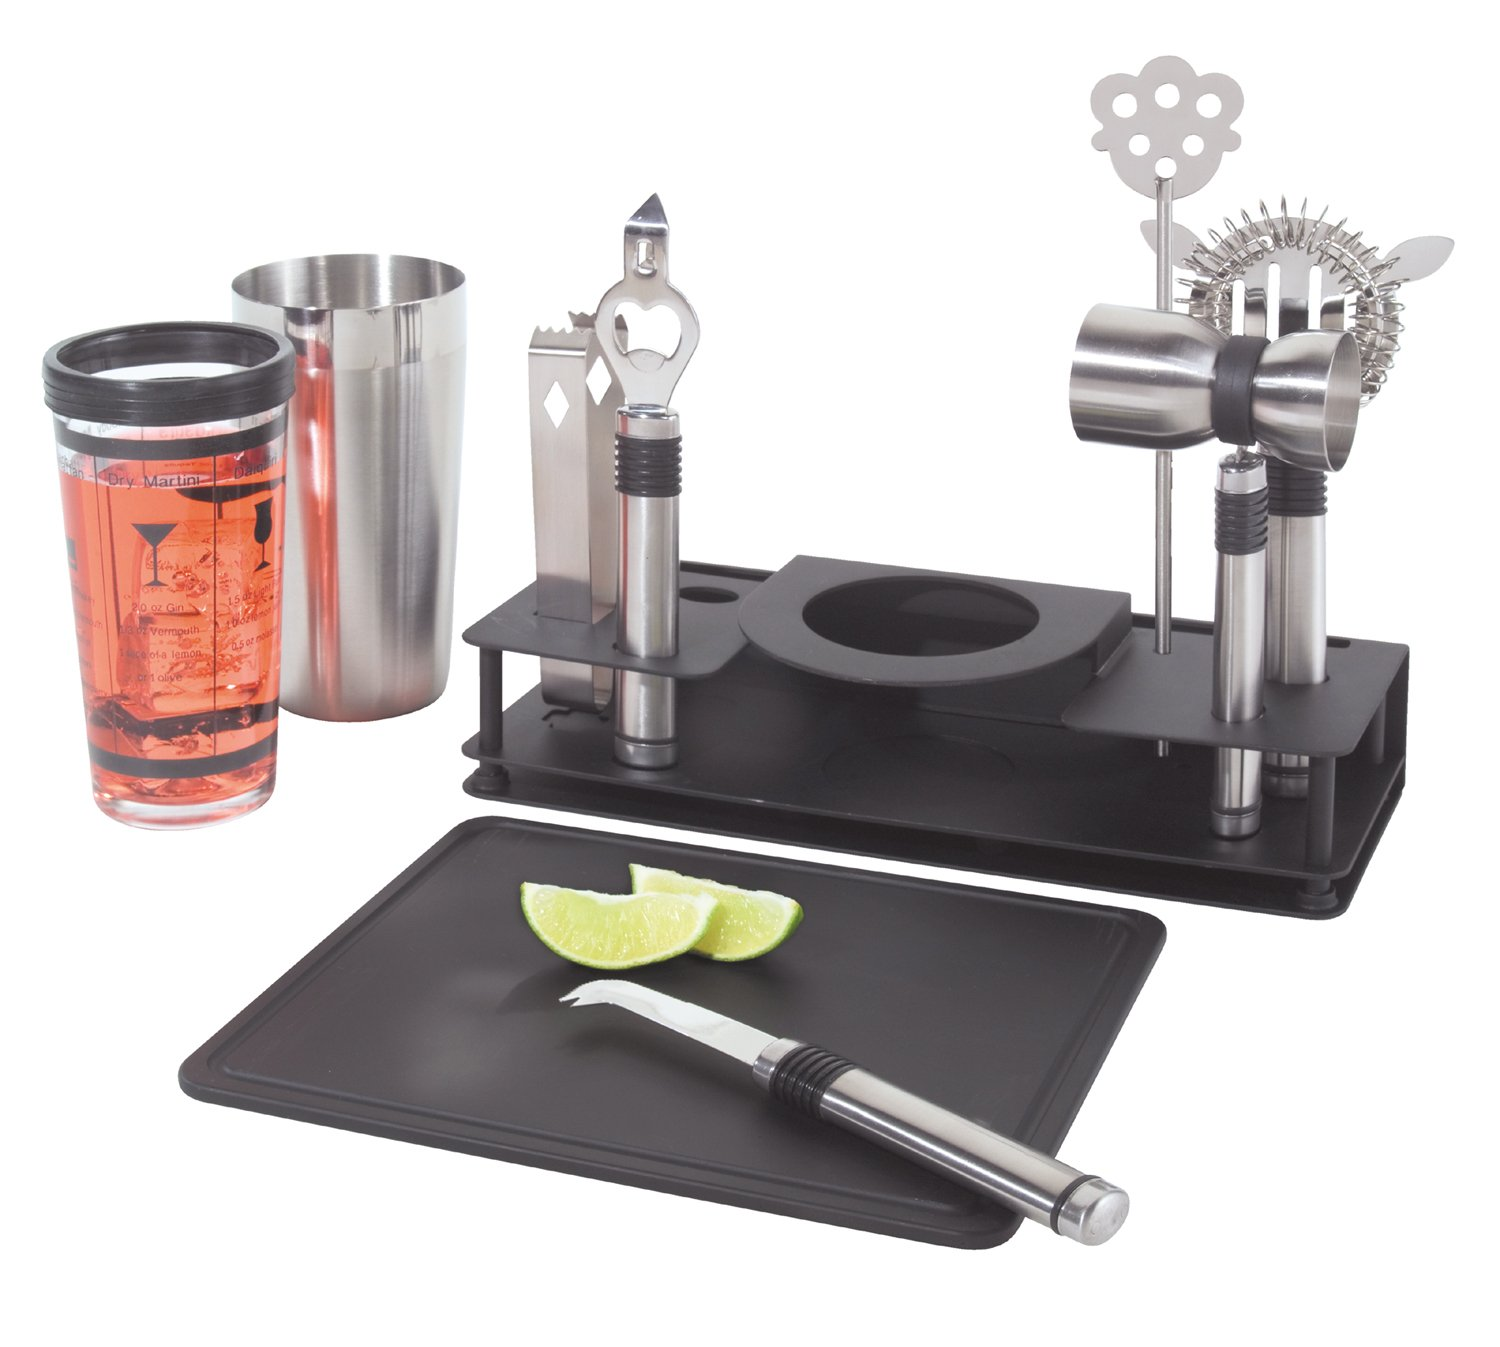 Gift for Dad - Cocktail Shaker and Bar Tool Set